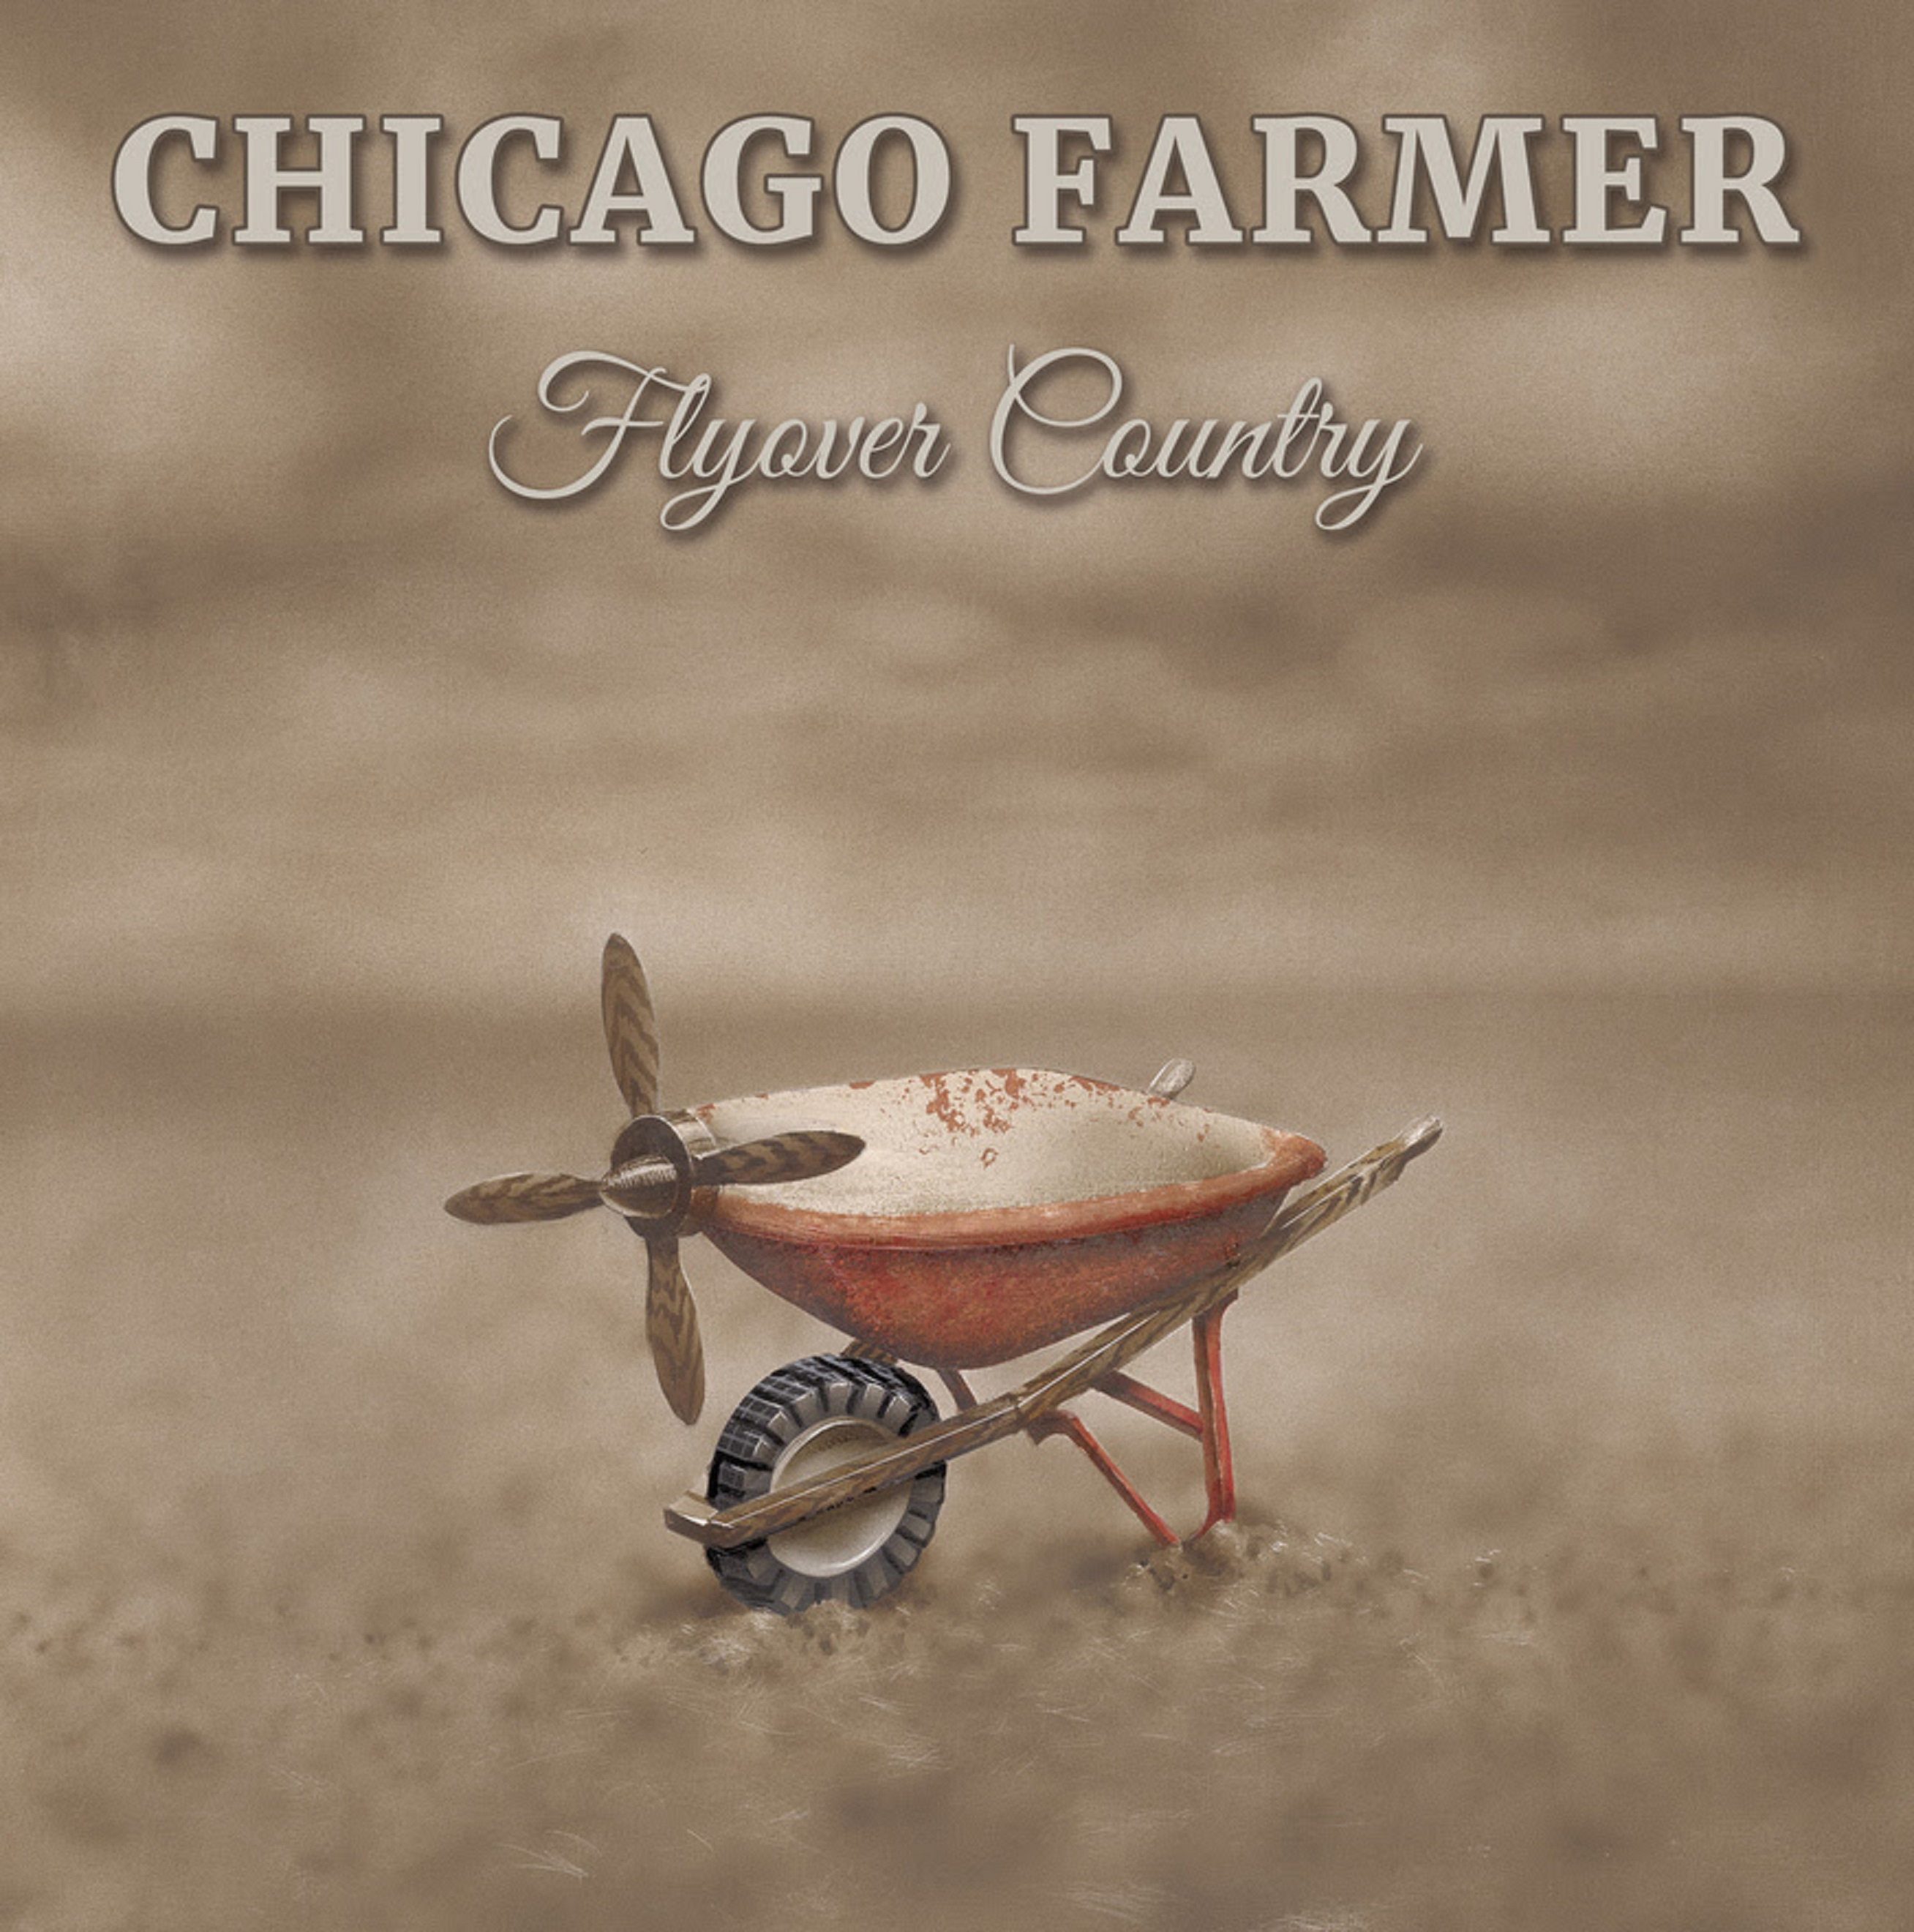 Chicago Farmer Joins Forces with The Band of Heathens